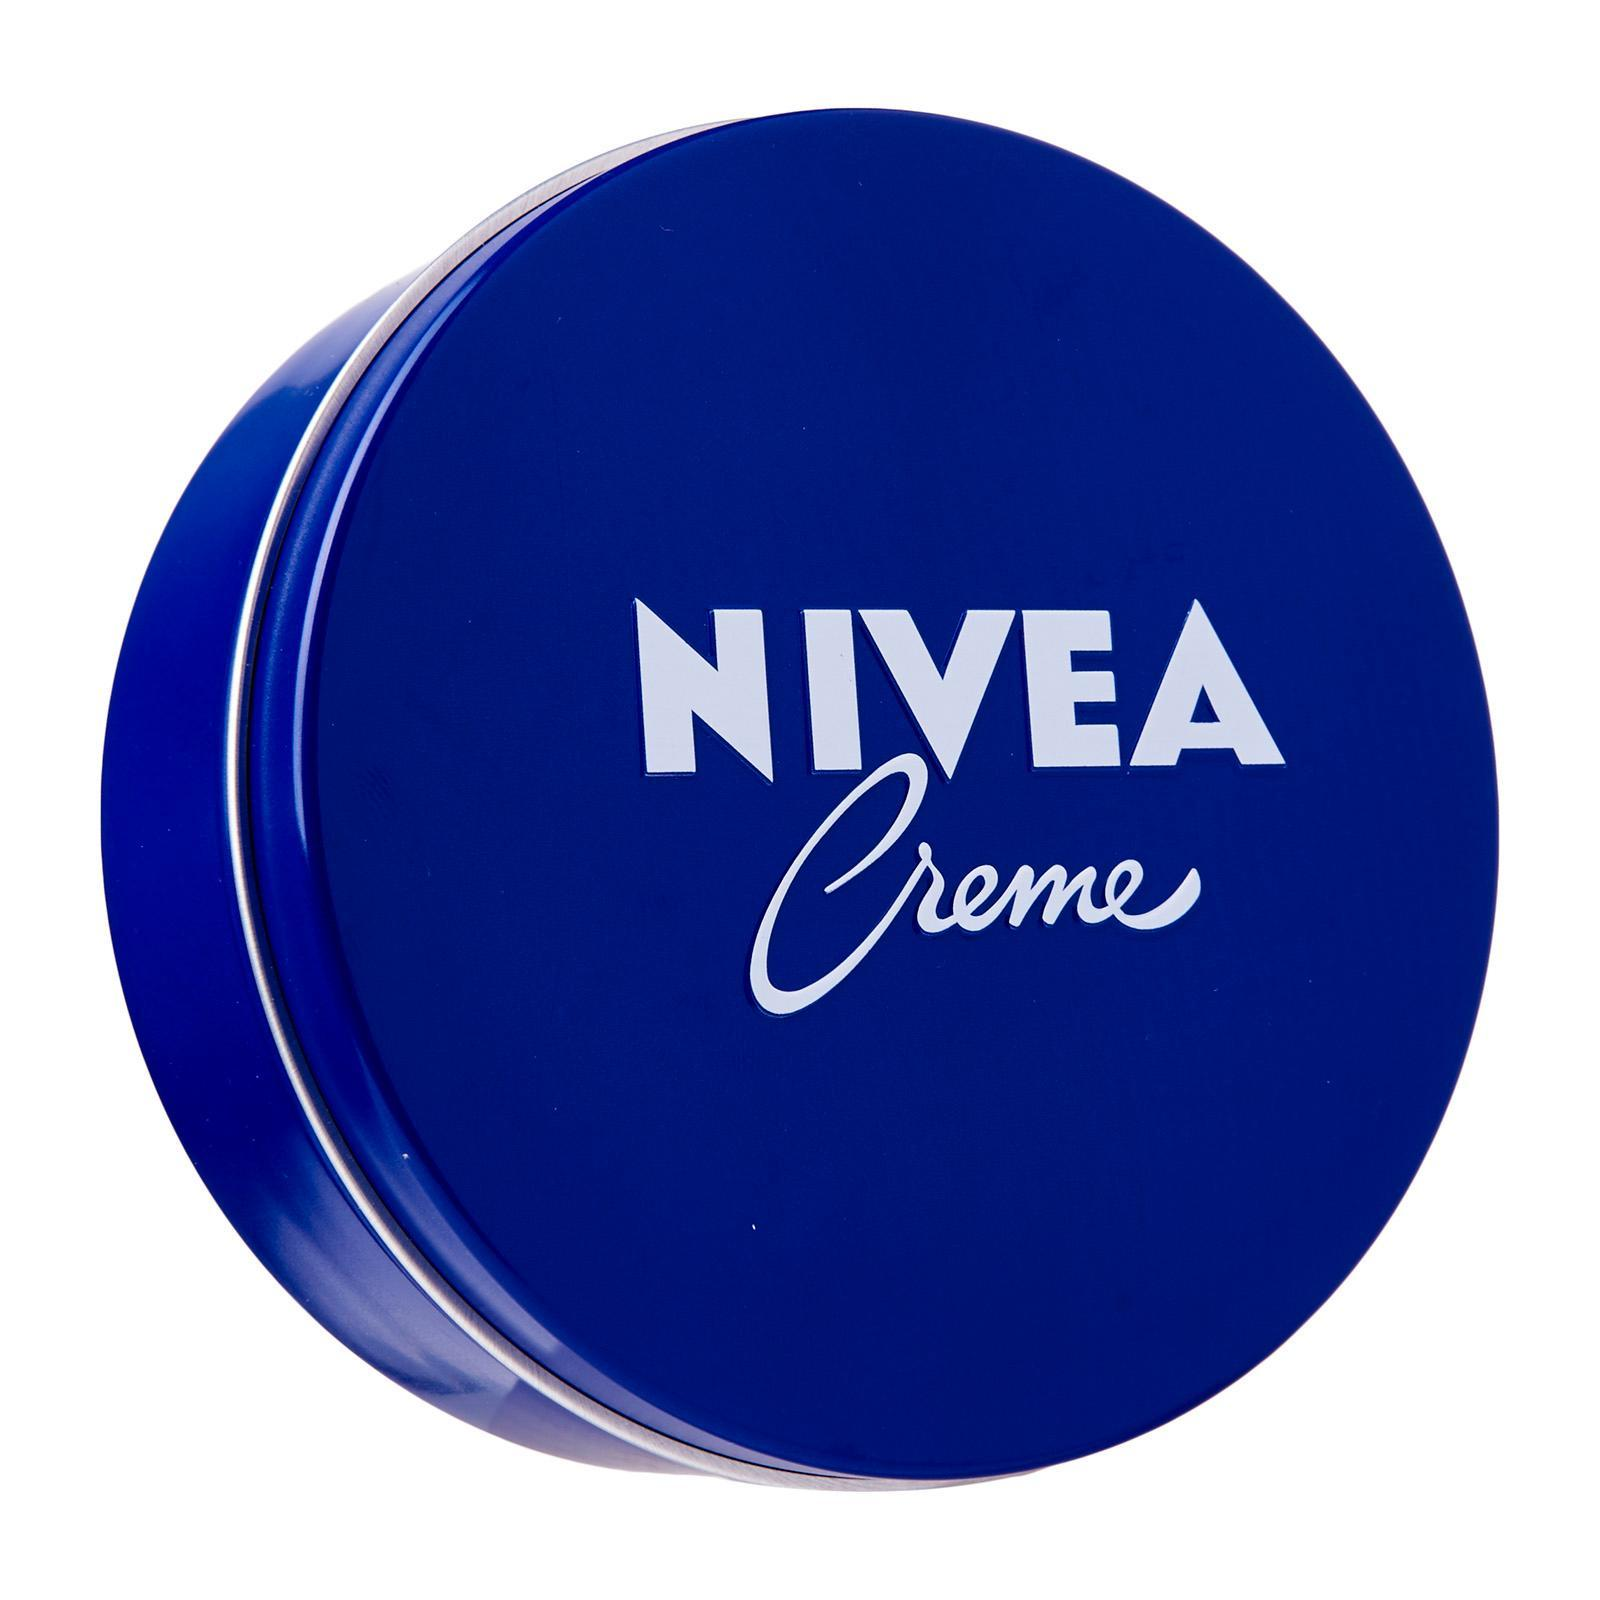 Nivea Body Care Unisex Cream